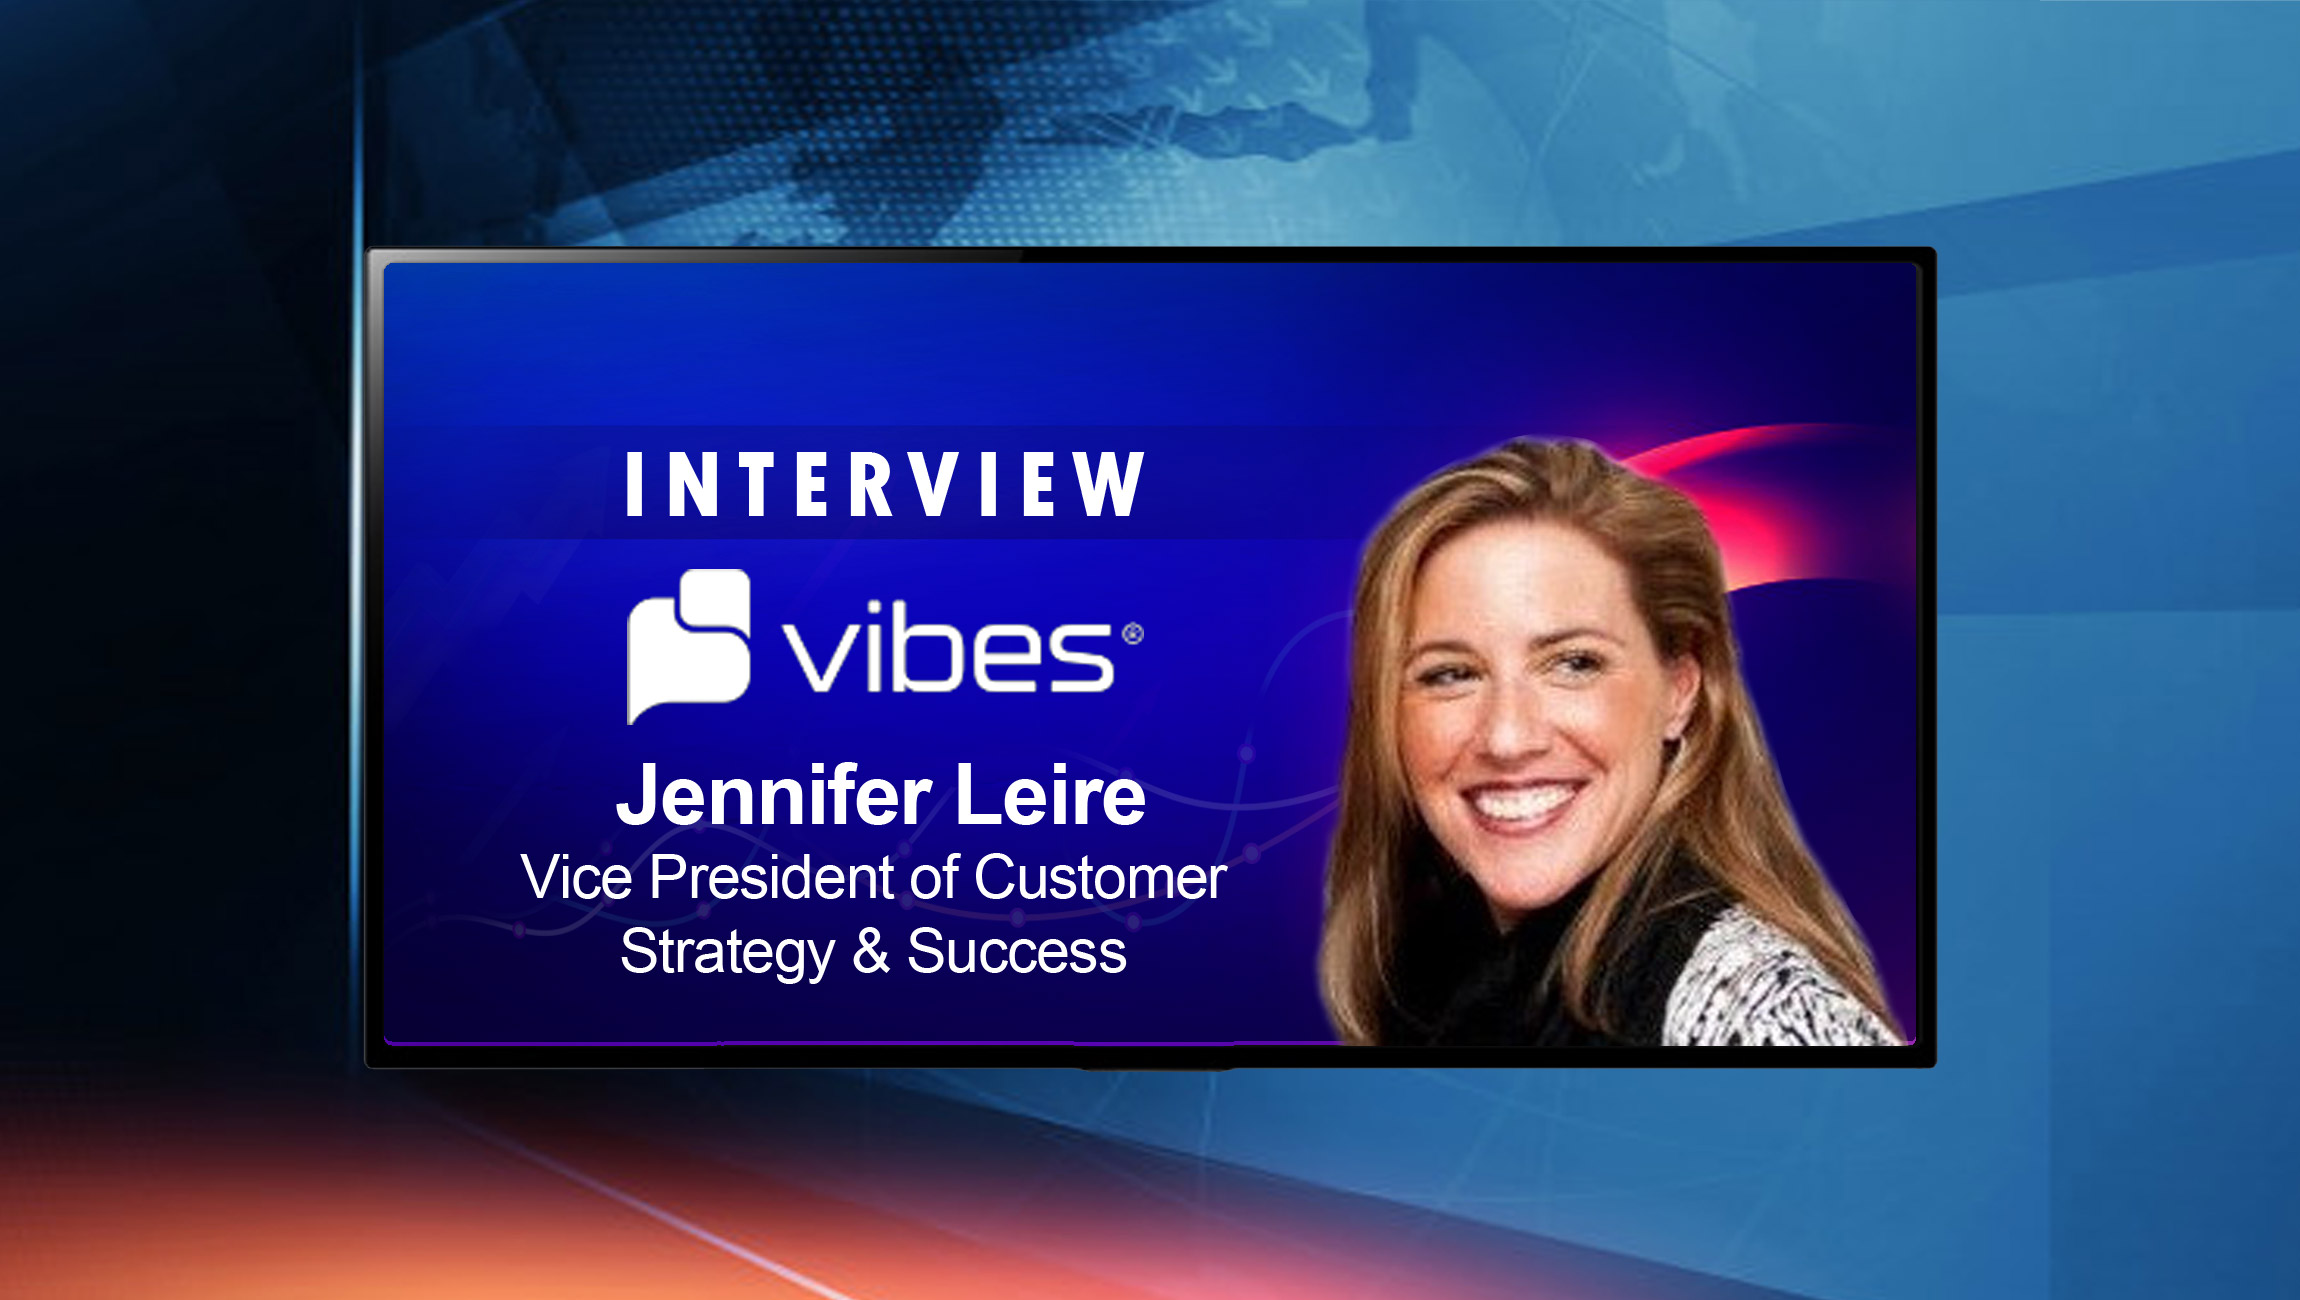 SalesTechStar Interview with Jennifer Leire, Vice President of Customer Strategy & Success at Vibes